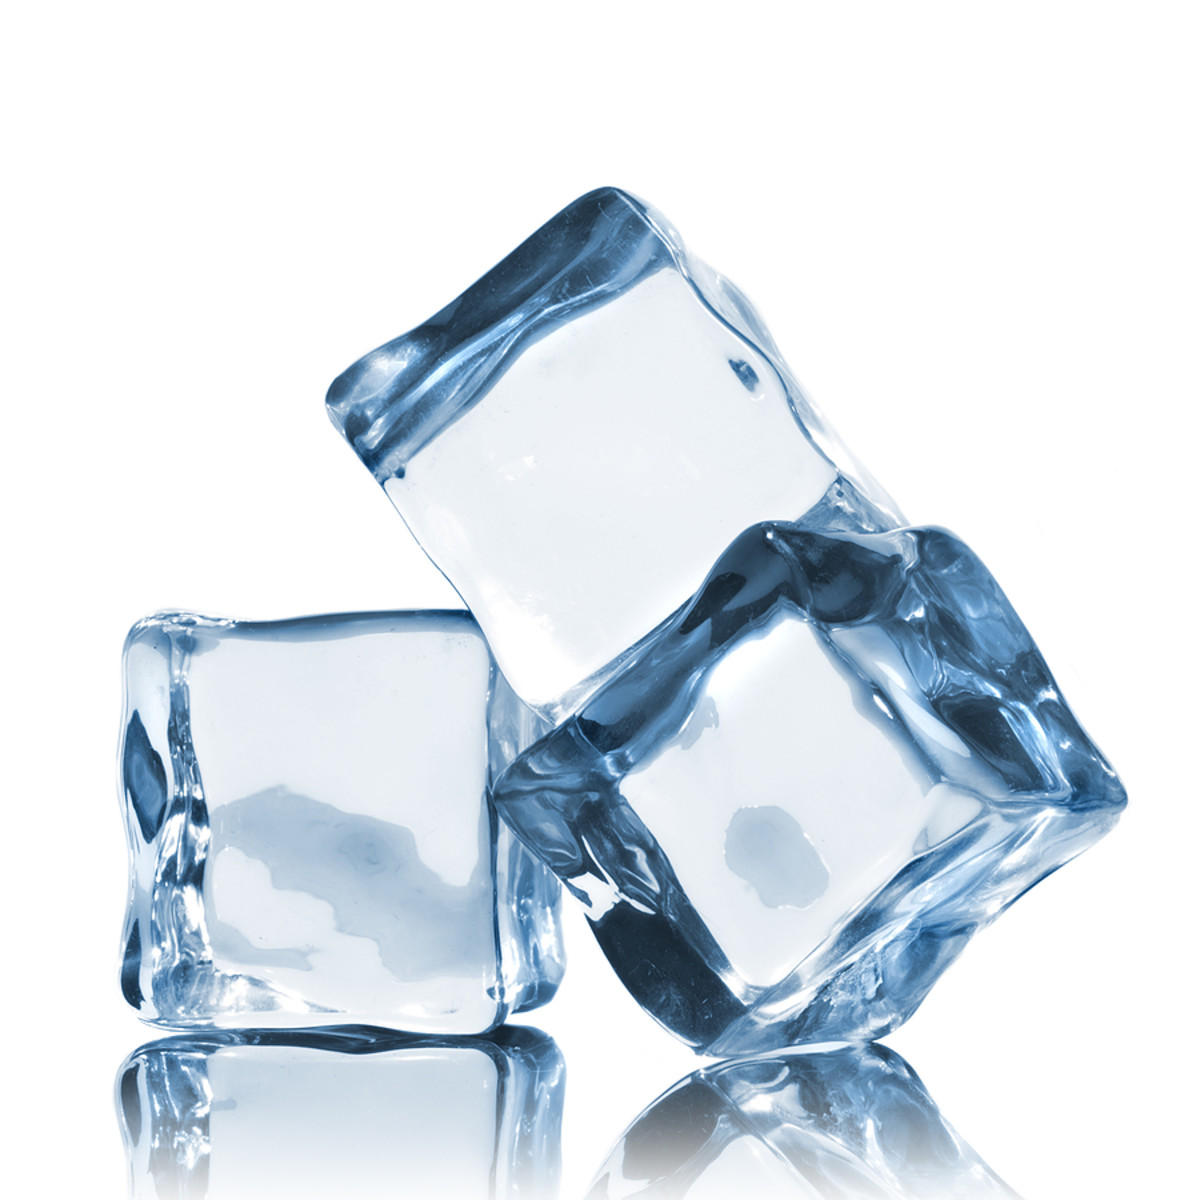 NEVER apply ice directly to your skin!